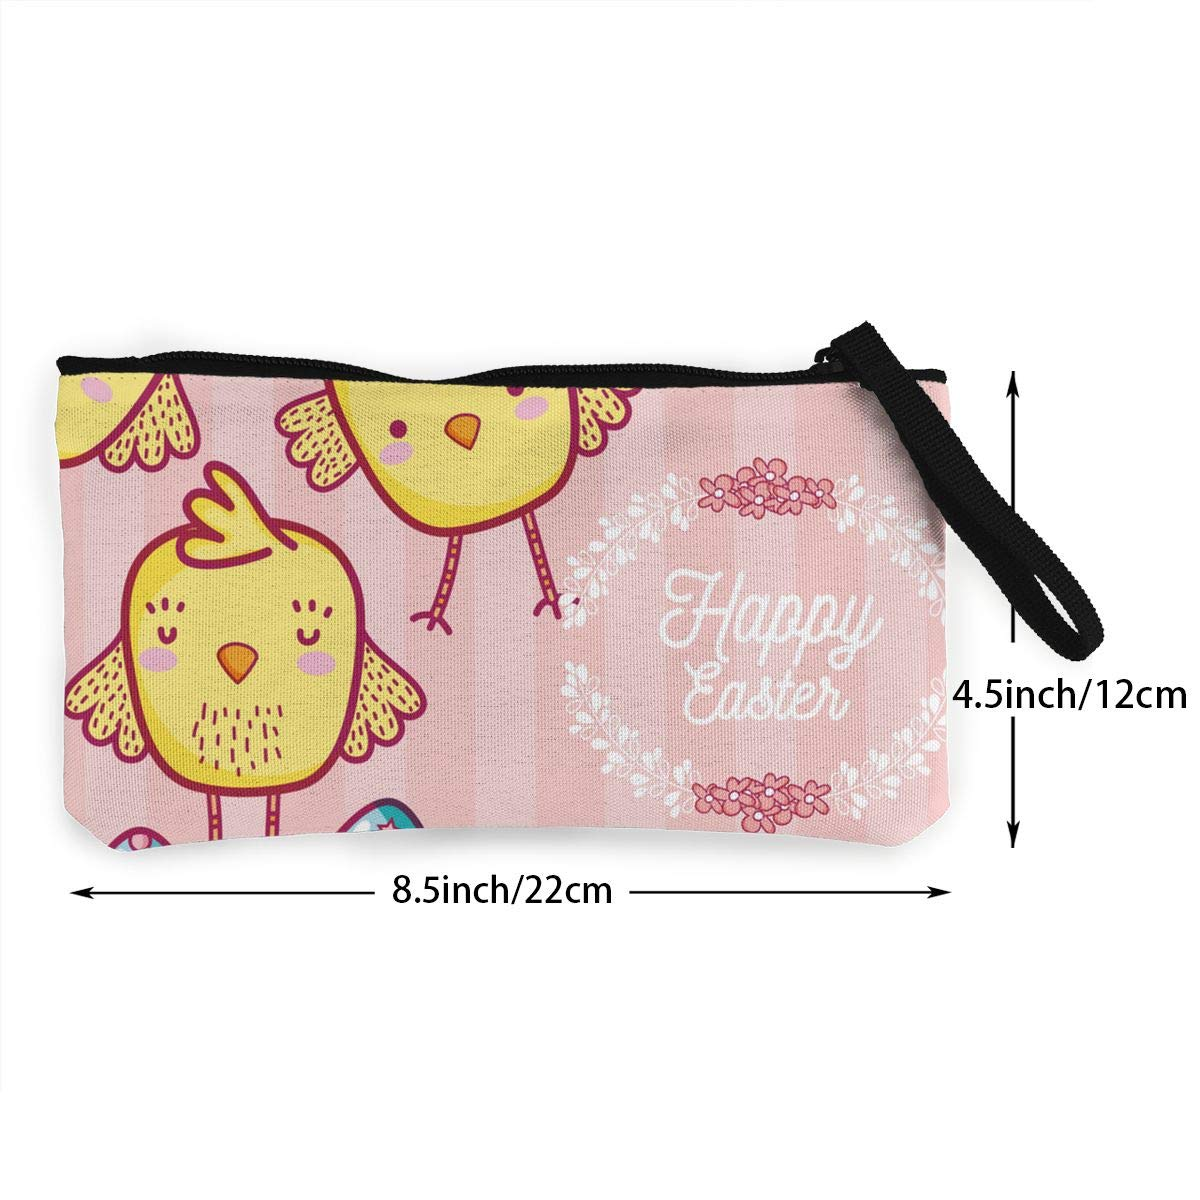 Maple Memories Easter Chicken Eggs Portable Canvas Coin Purse Change Purse Pouch Mini Wallet Gifts For Women Girls